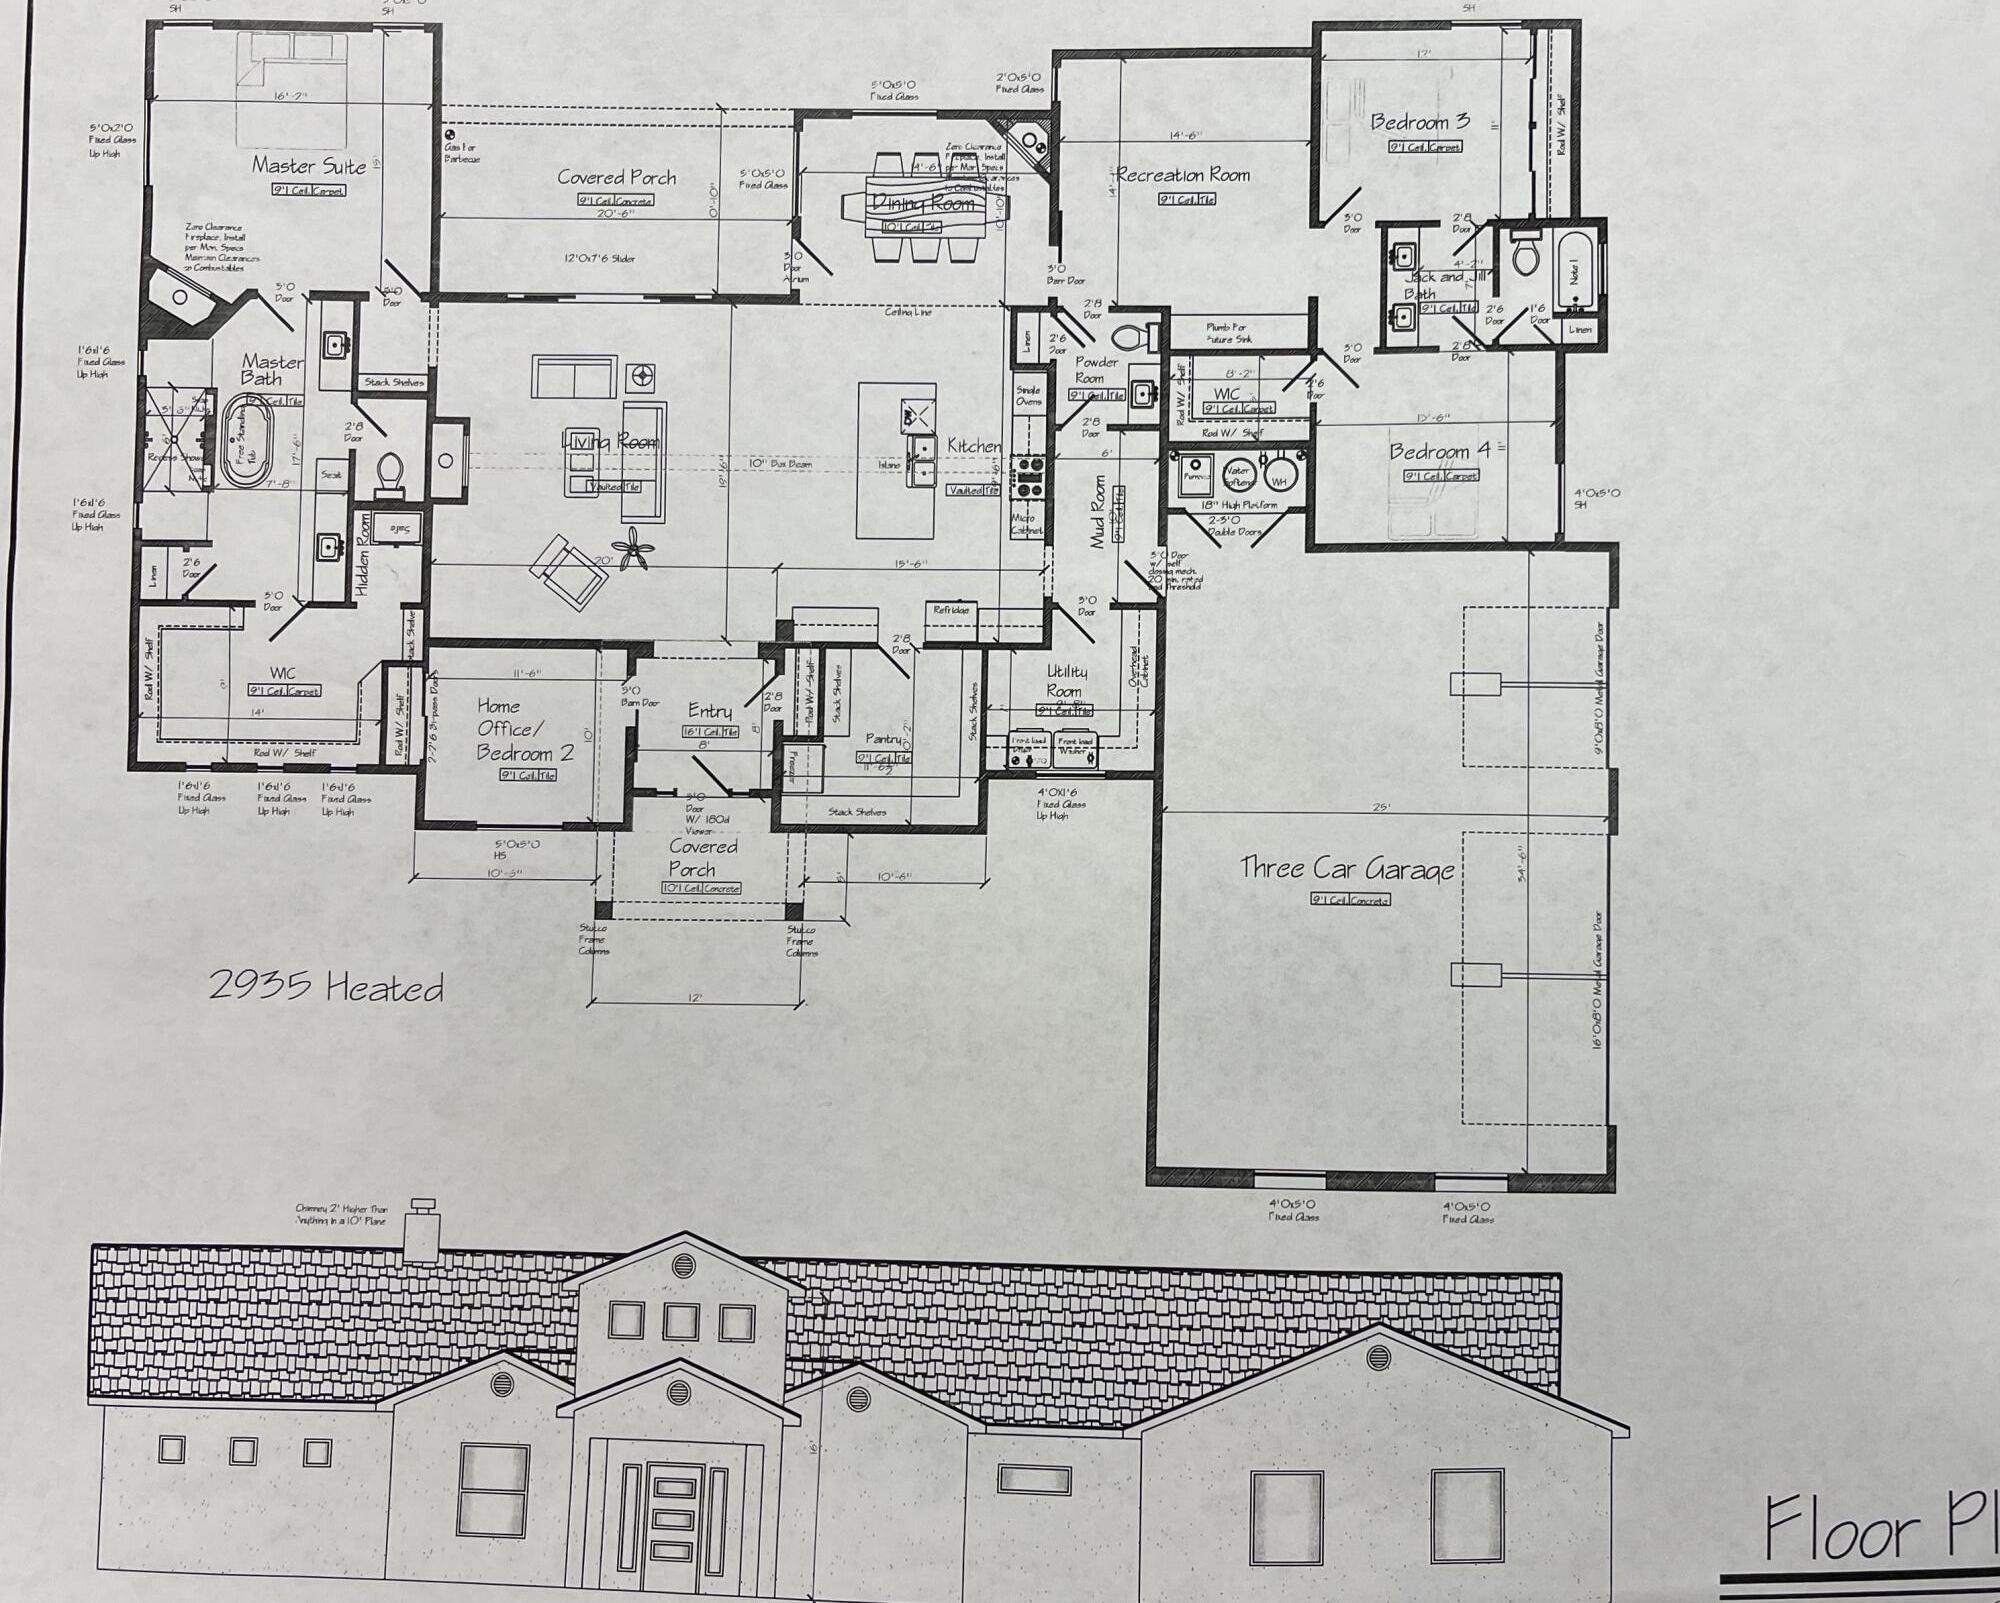 Under construction, stunning custom home. This amazing home offers 4 bedrooms, large walk-in closet and shower in the master suite, a fire place in the master, living room and dinning room! Recreation room for entertaining or movie nights. Oversized pantry to fit freezer and mud room off of the garage, just to mention a few great features! Located in a gated community on 1.5 acres.